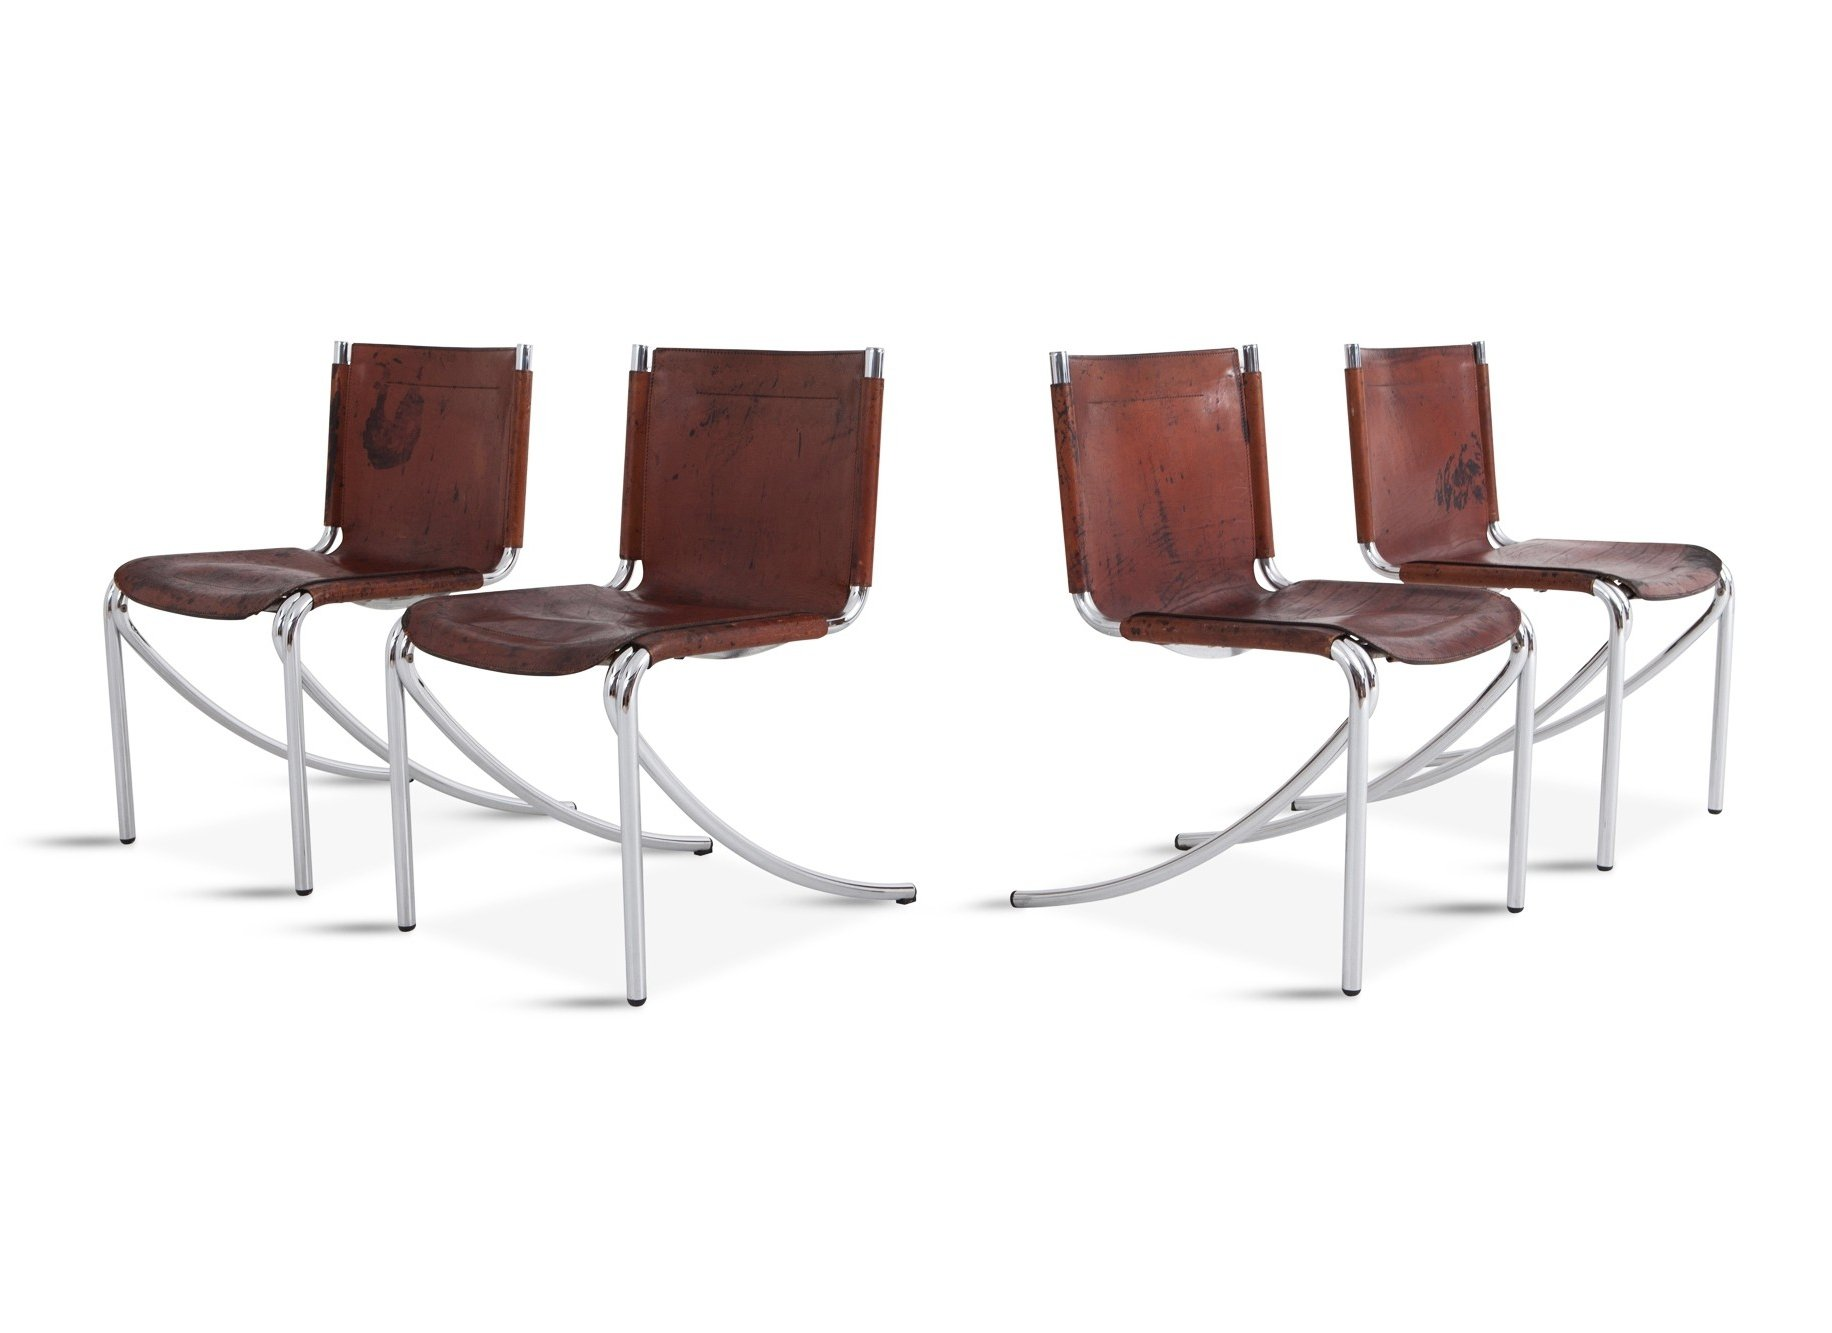 Amazing Red Leather And Chrome Jot Dining Chairs By Giotto Stoppino For Acerbis 1970S Gmtry Best Dining Table And Chair Ideas Images Gmtryco